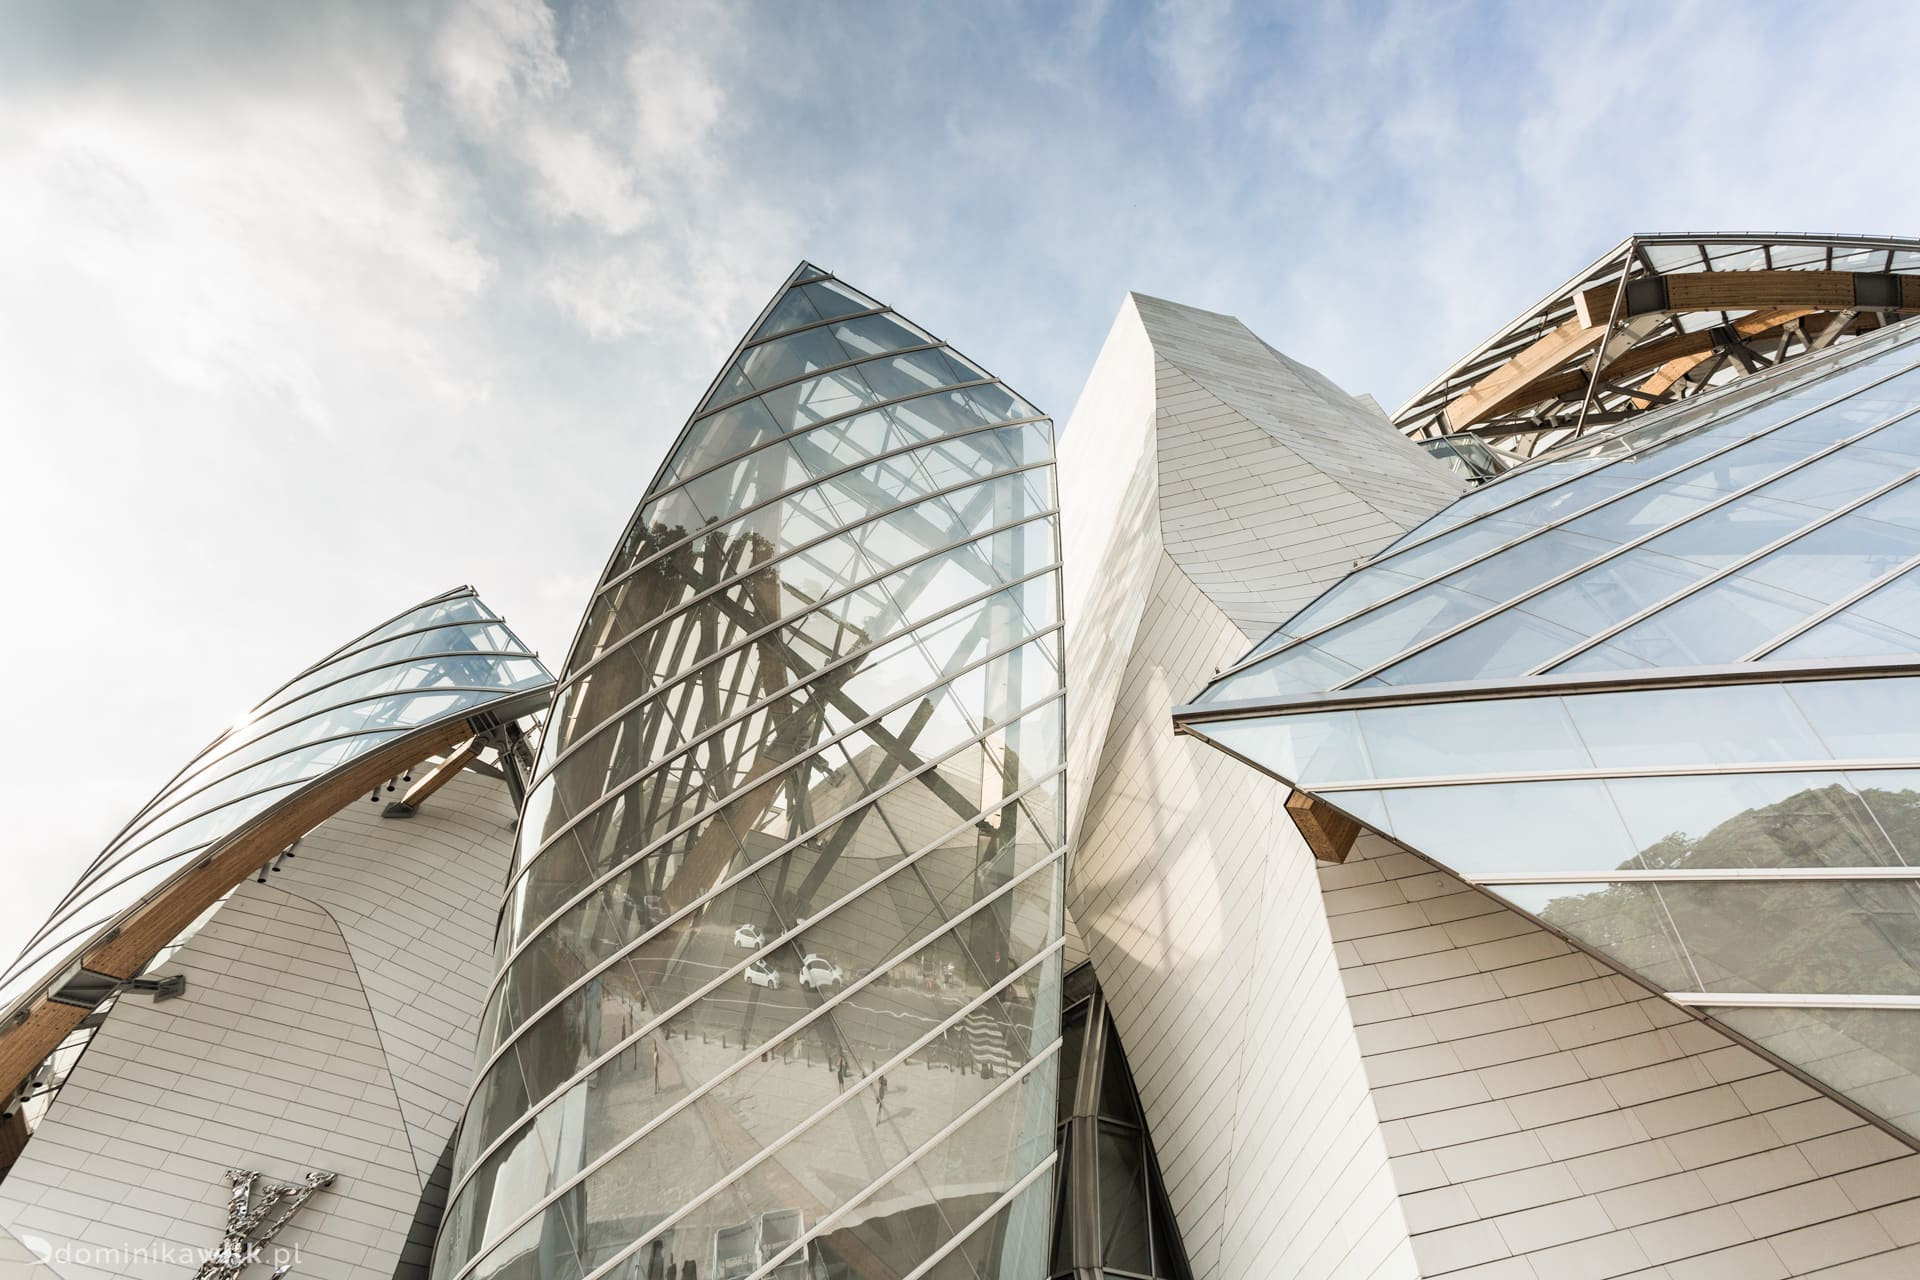 Louis Vuitton Foundation - Paryz - Frank Gehry